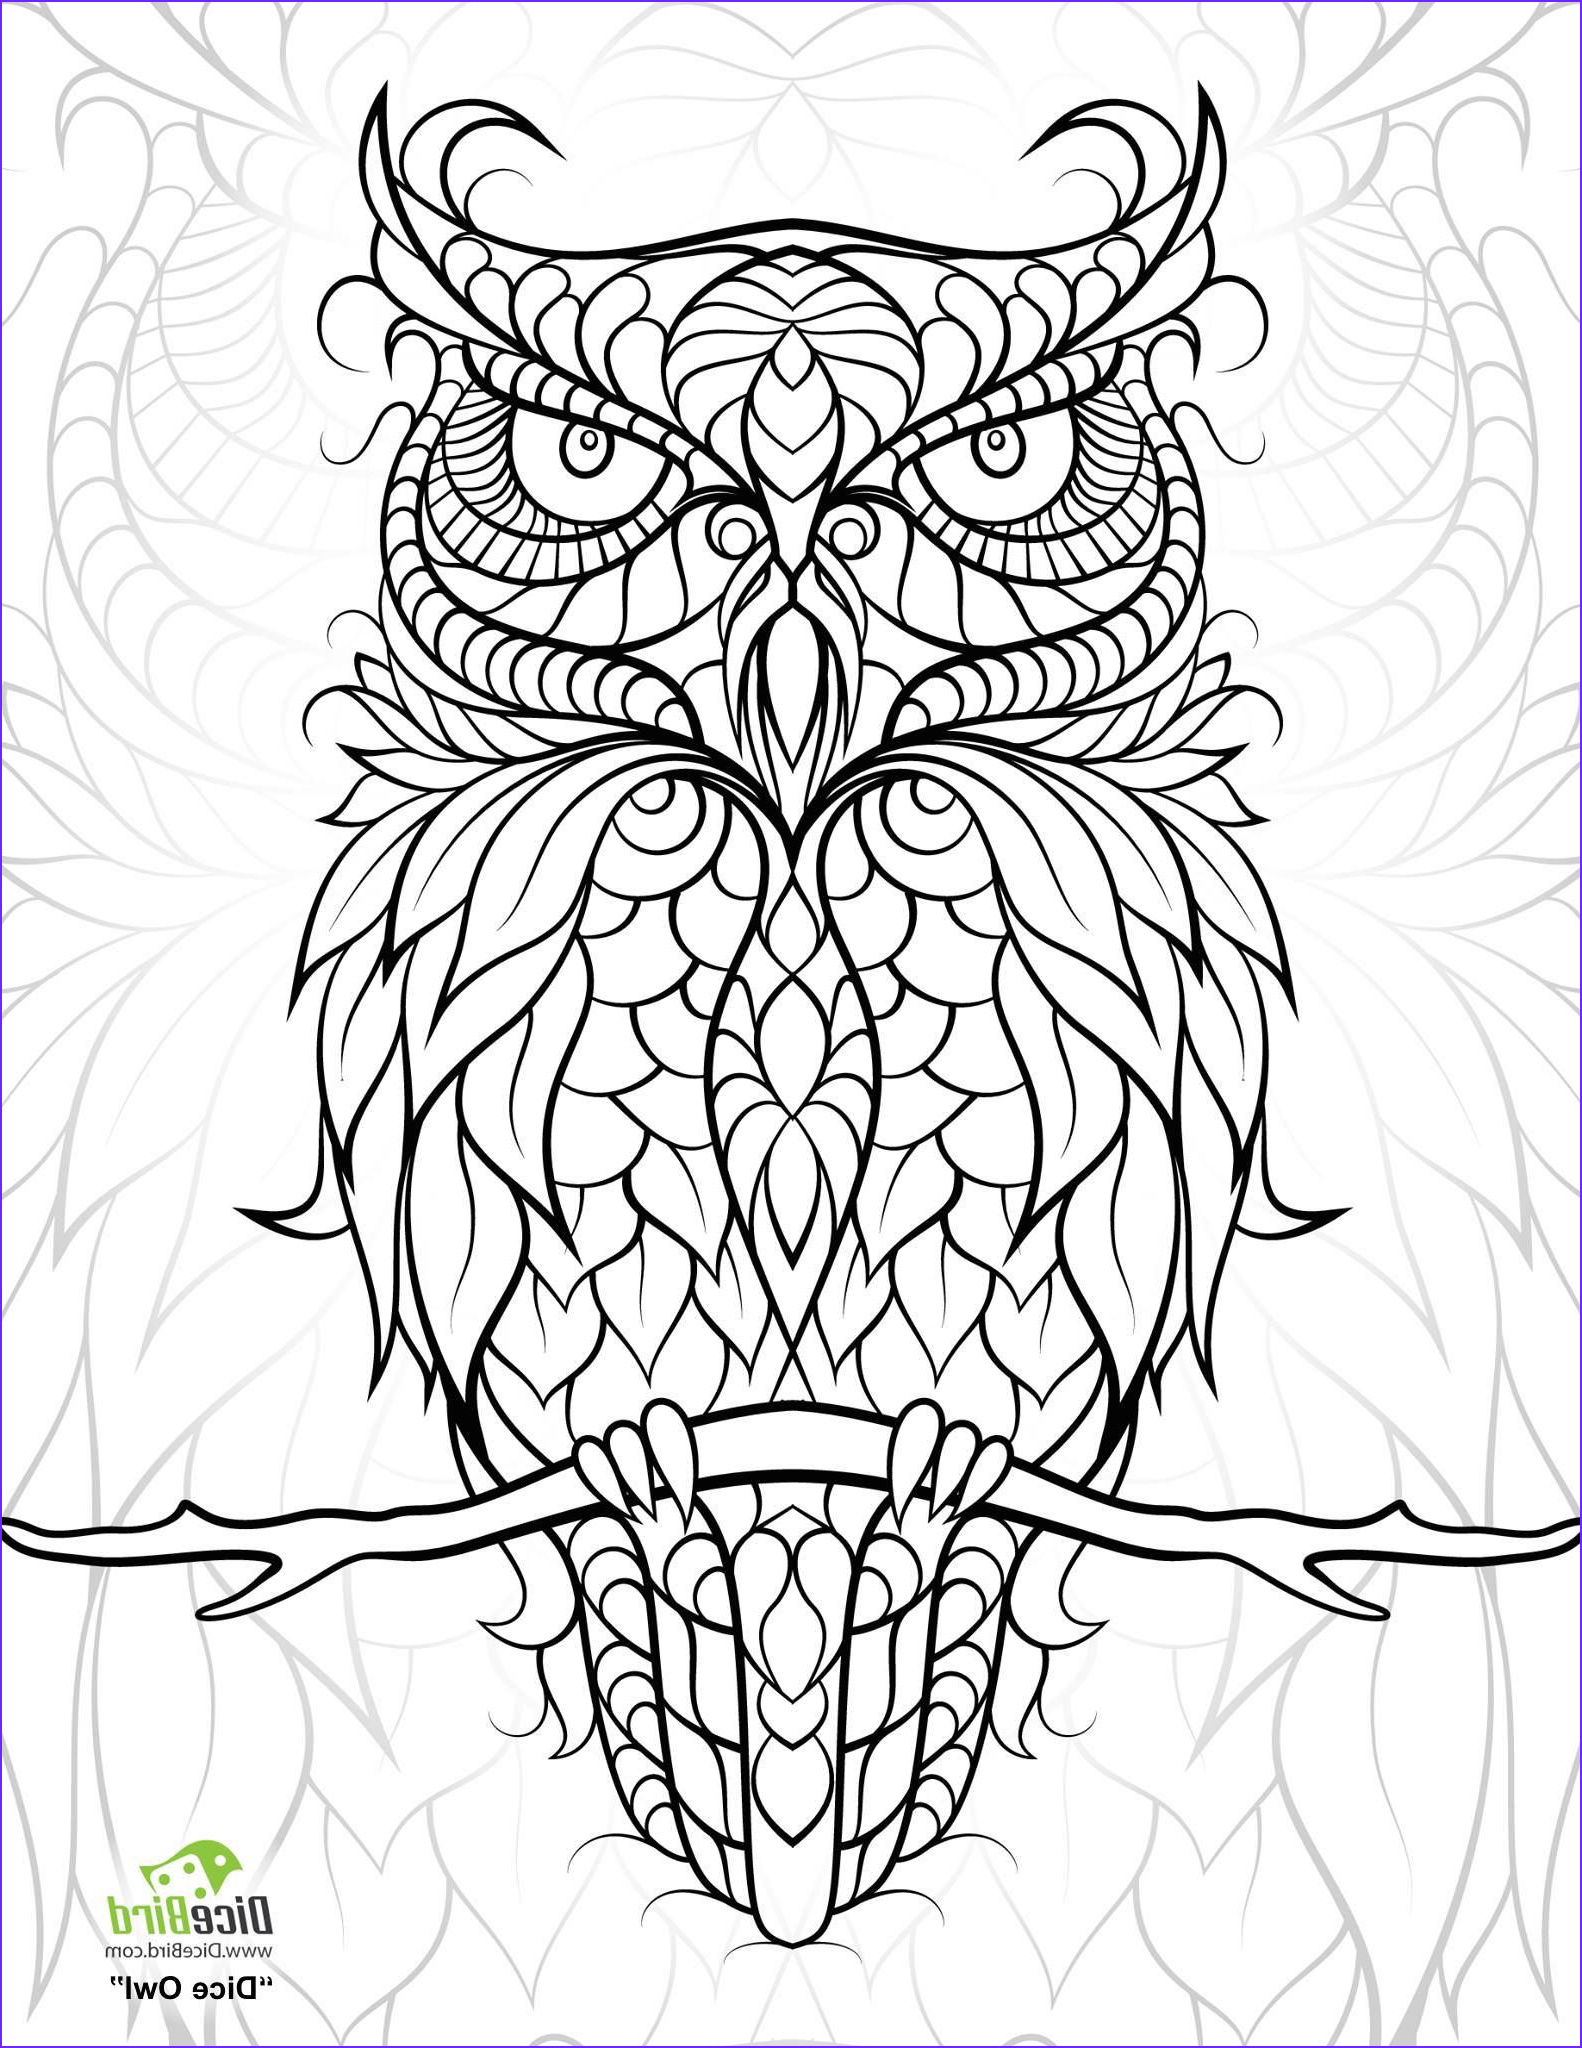 Coloring Pages Of Animals for Adults Unique Photos Diceowl Free Printable Adult Coloring Pages